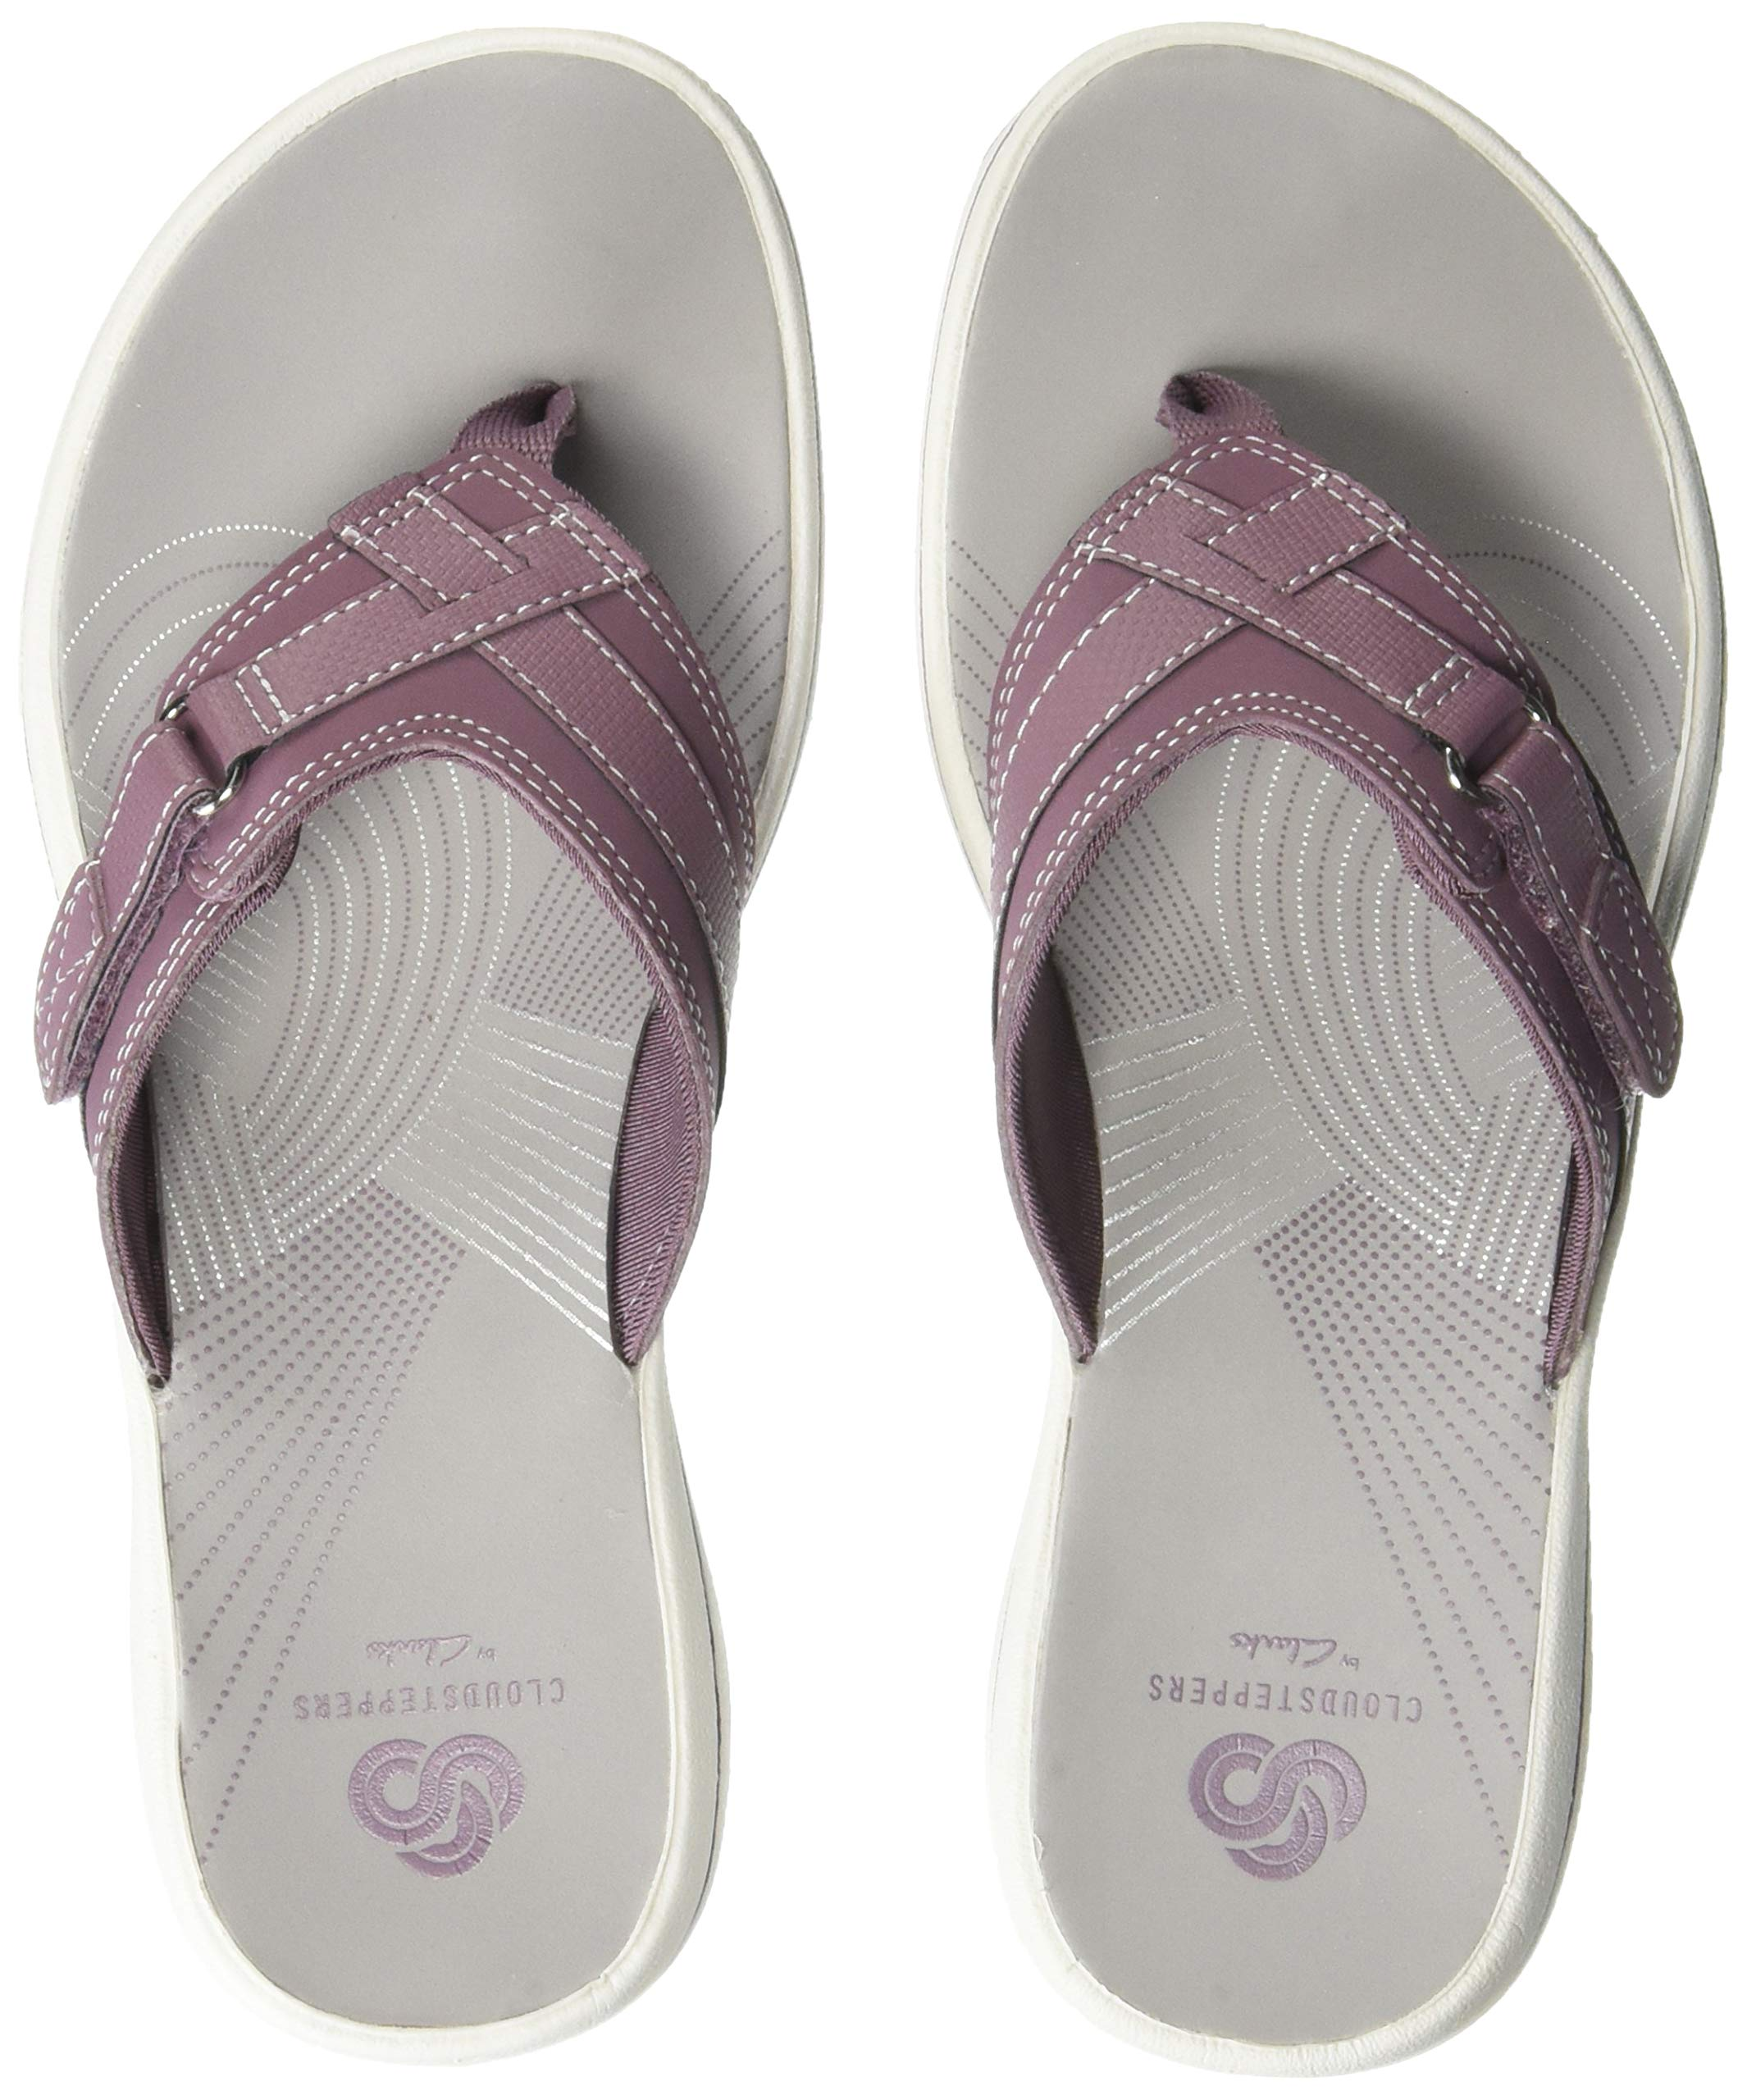 c2af466833383 Best Rated in Women's Sandals & Helpful Customer Reviews - Amazon.com